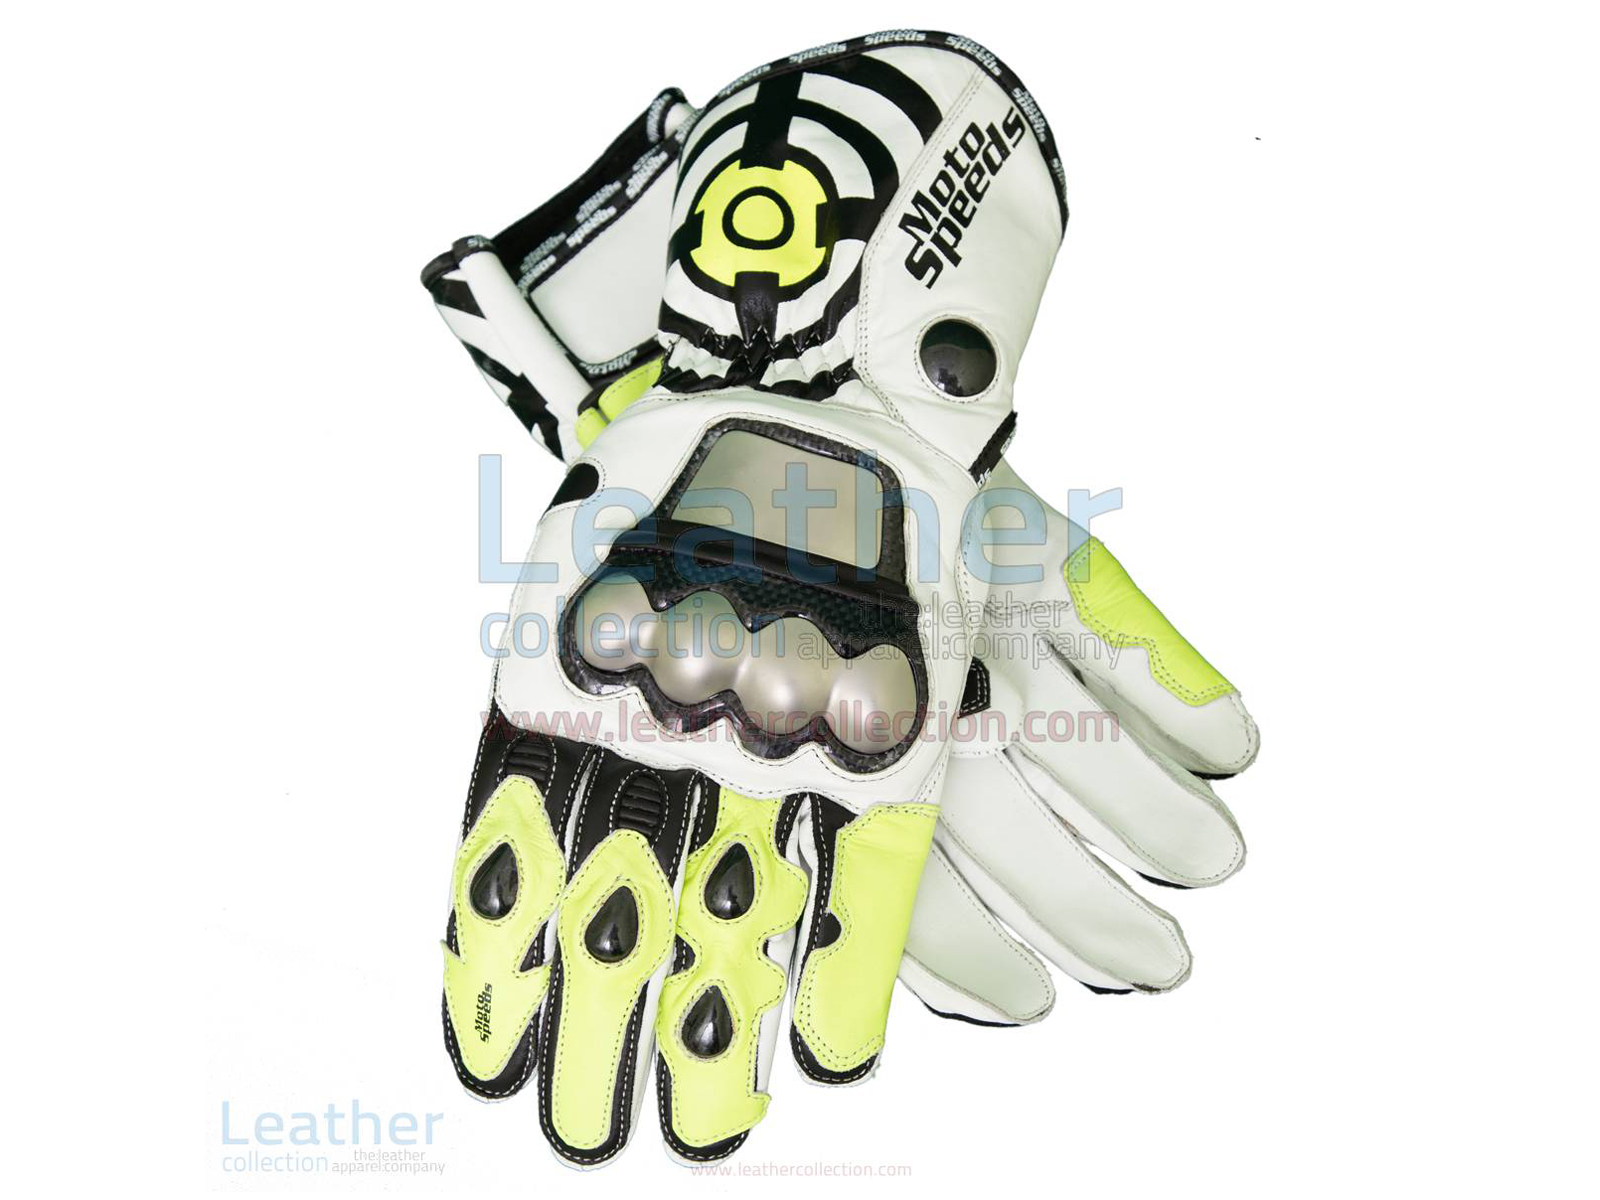 Andrea Iannone 2015 Leather Racing Gloves